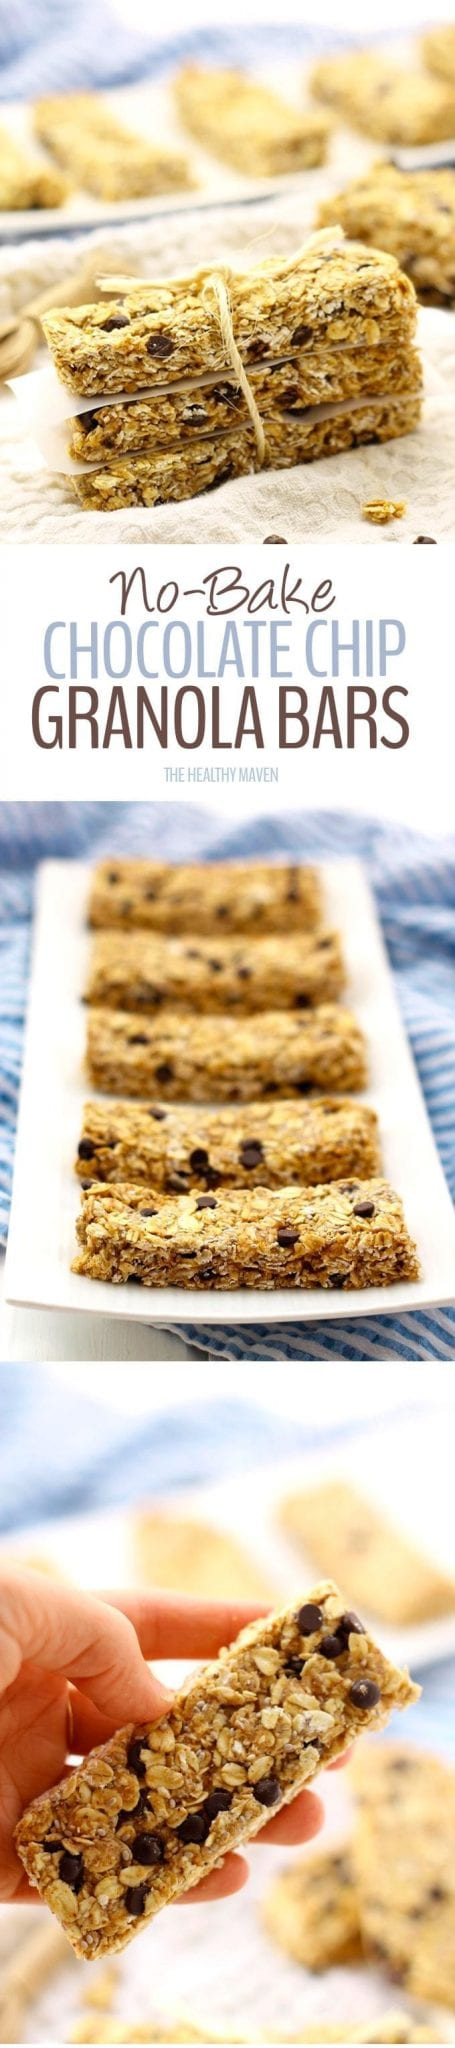 Healthy No-Bake Protein Granola Bars- with 9 grams of protein and ready in 20 minutes, these protein bars will become your new favorite snack recipe!